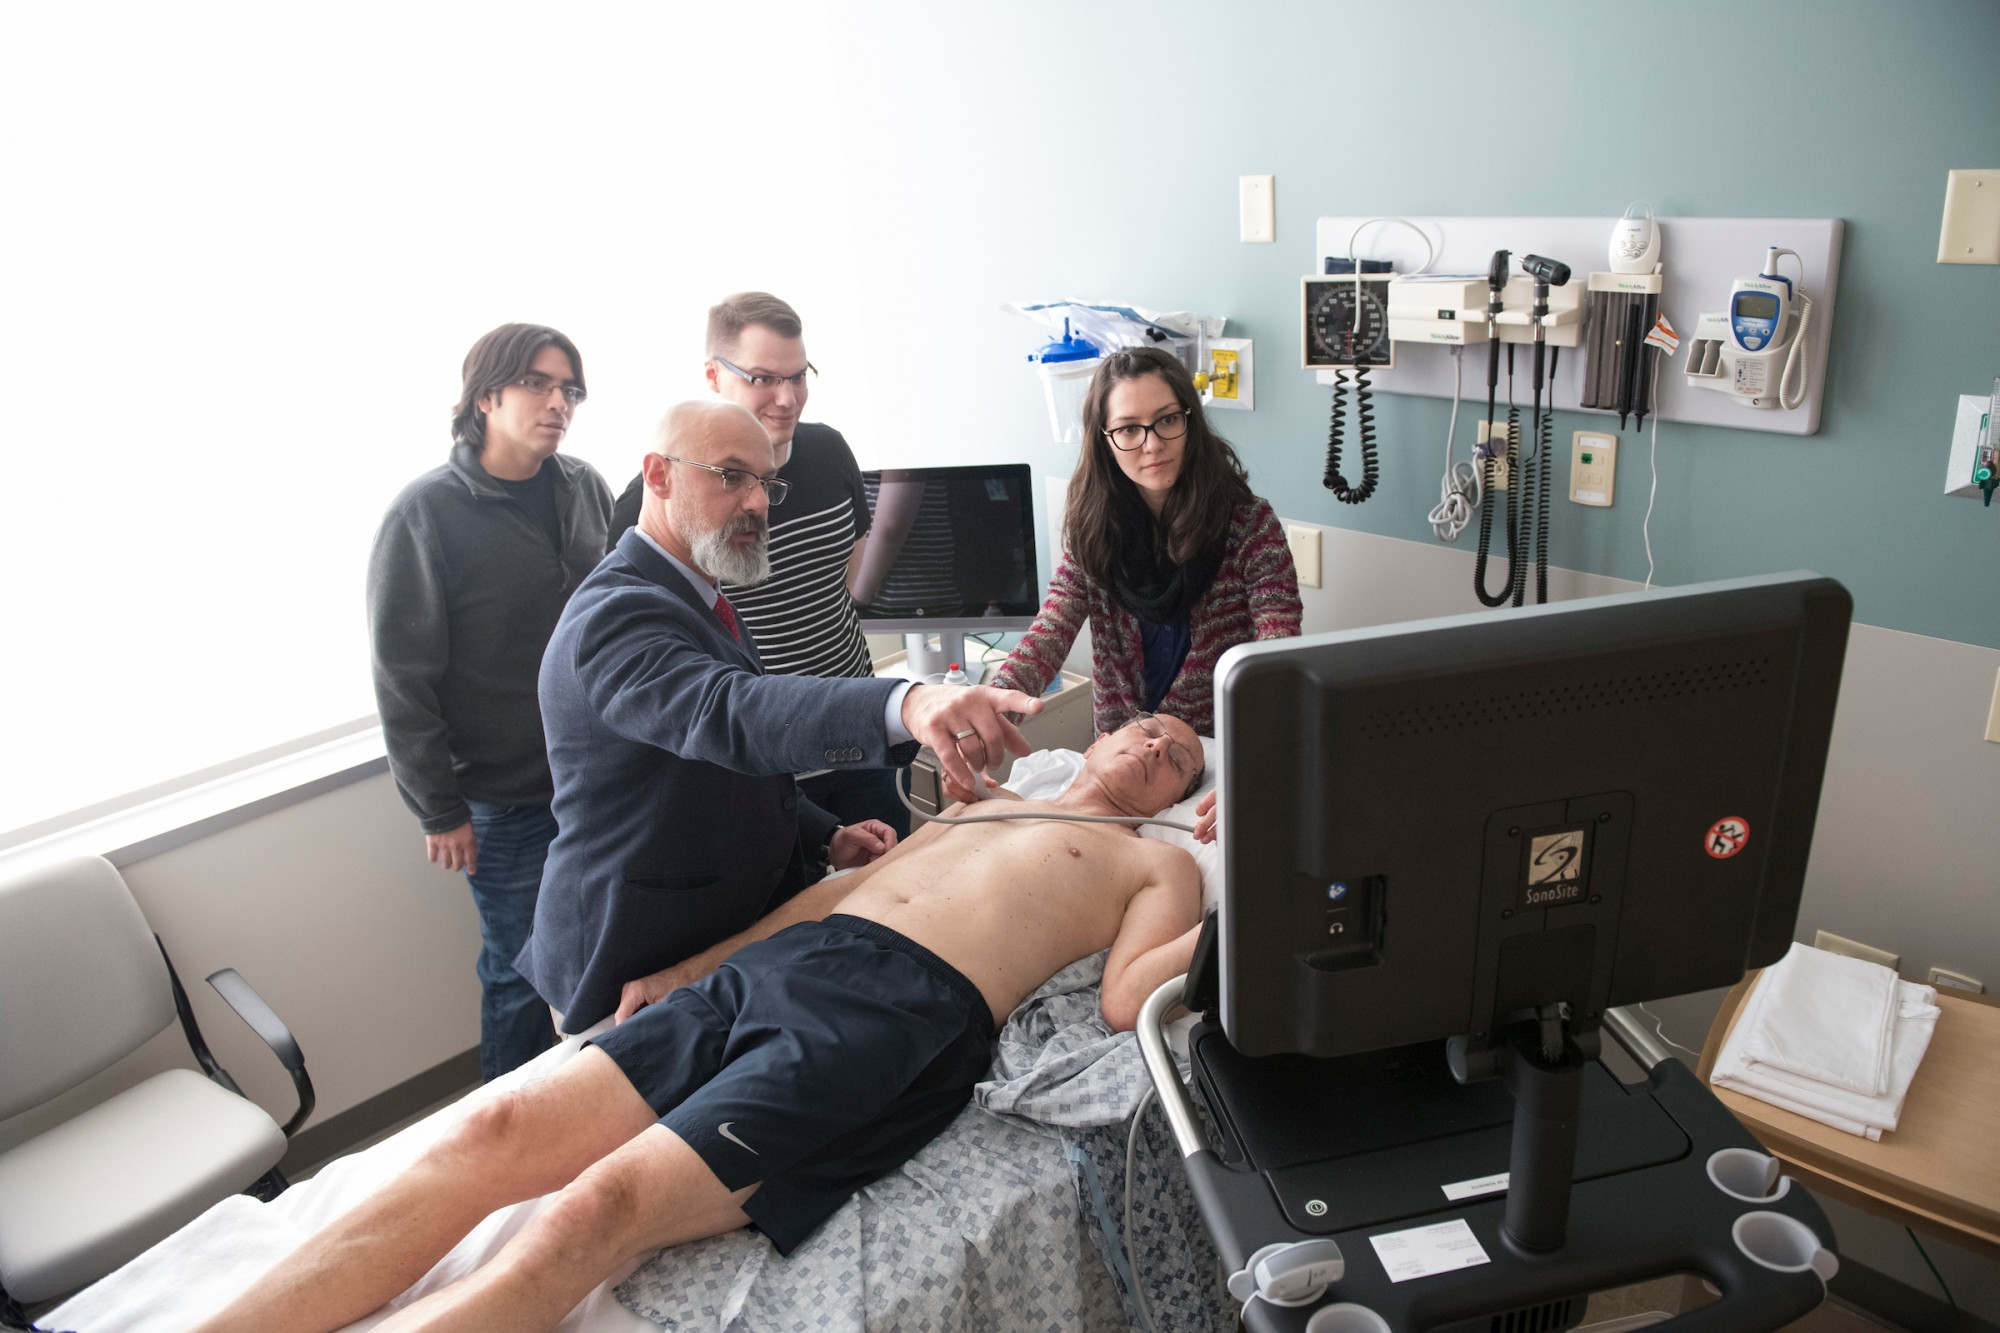 Center for Advanced Simulation in Healthcare at Northwestern